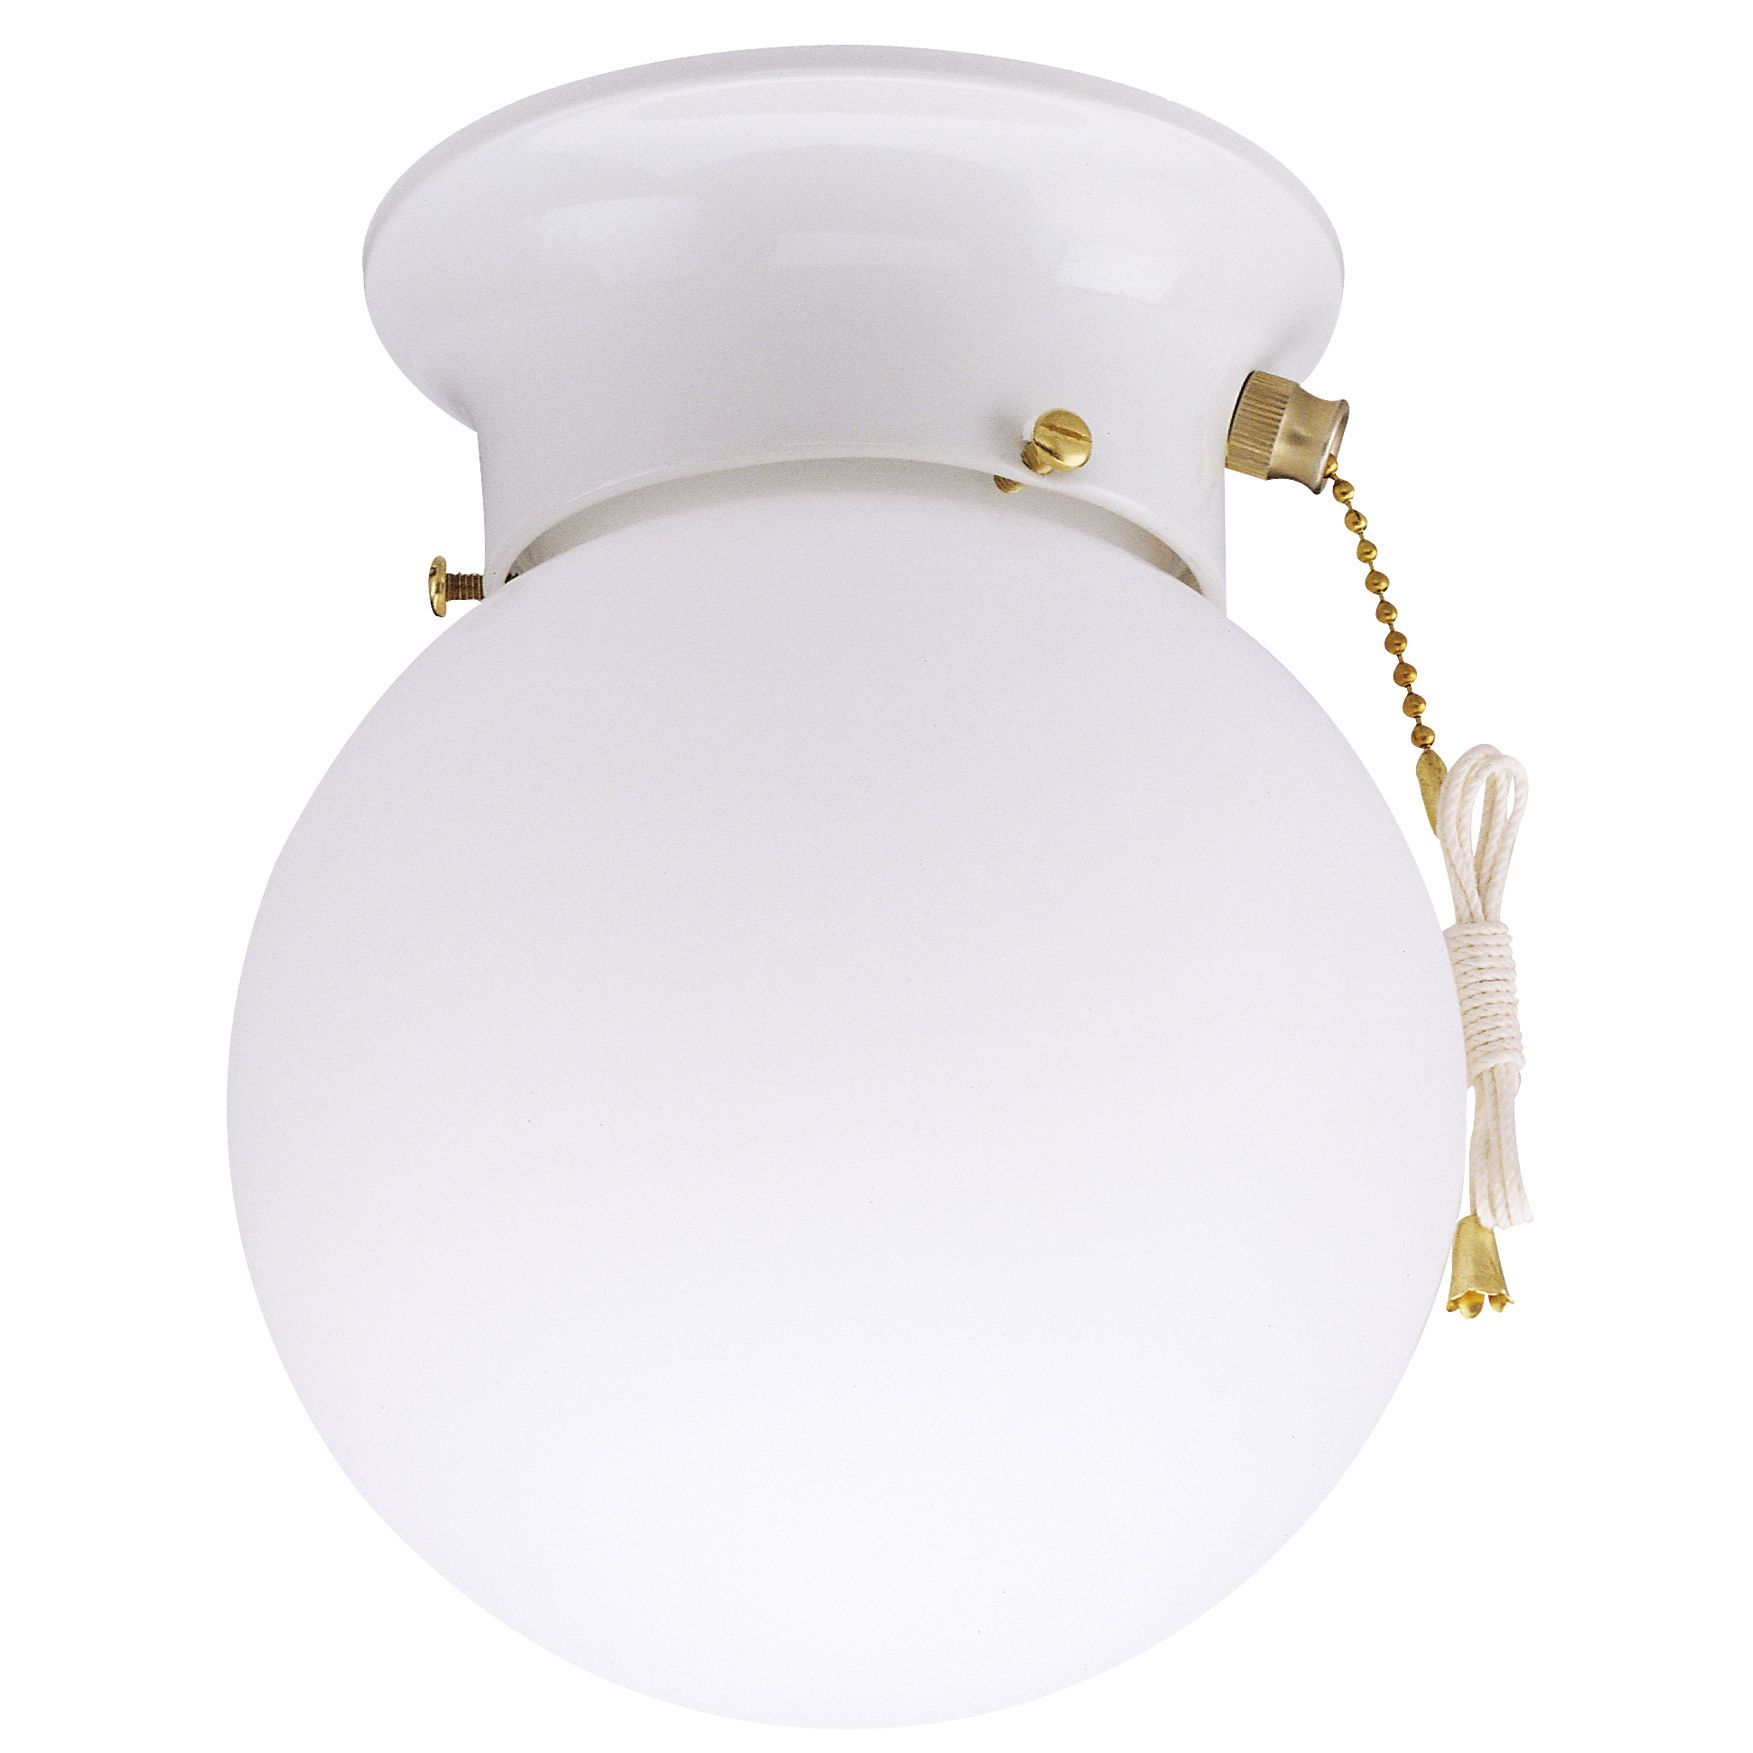 Ceiling Light Fixtures With Pull Chain Amusing Westinghouse 6668000 White Ceiling Light With Pull Chain Lights Review